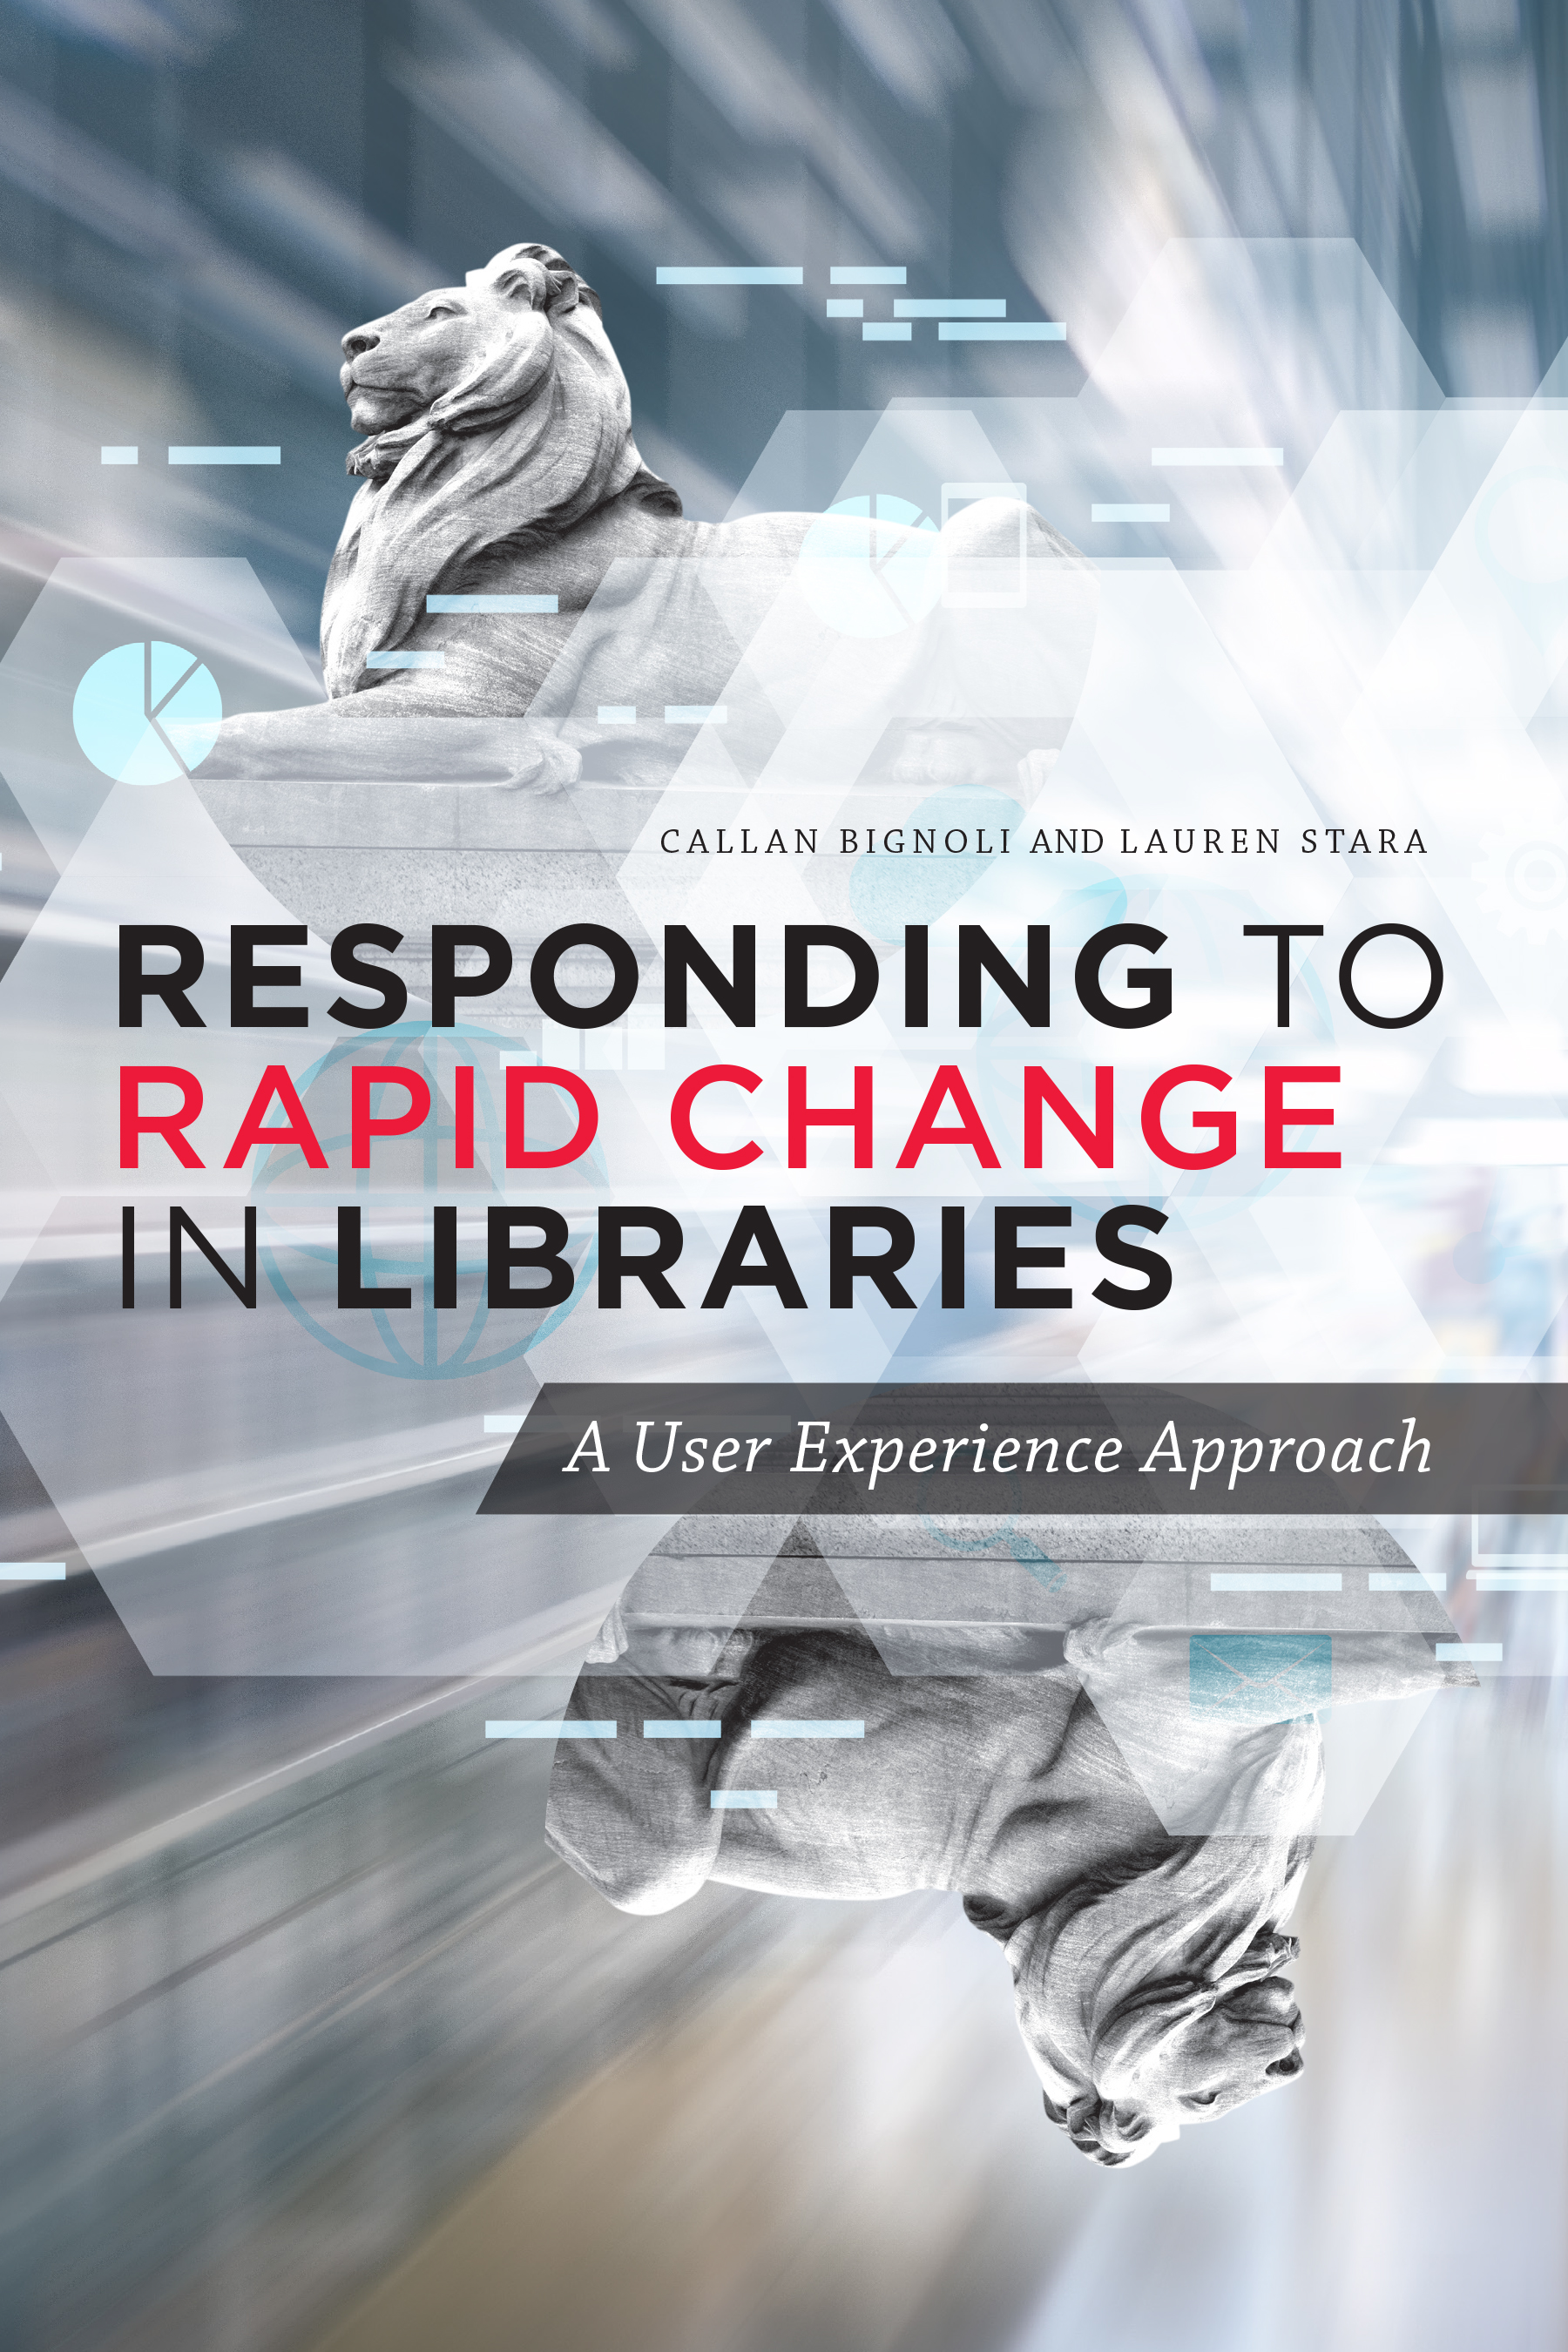 Image for Responding to Rapid Change in Libraries: A User Experience Approach